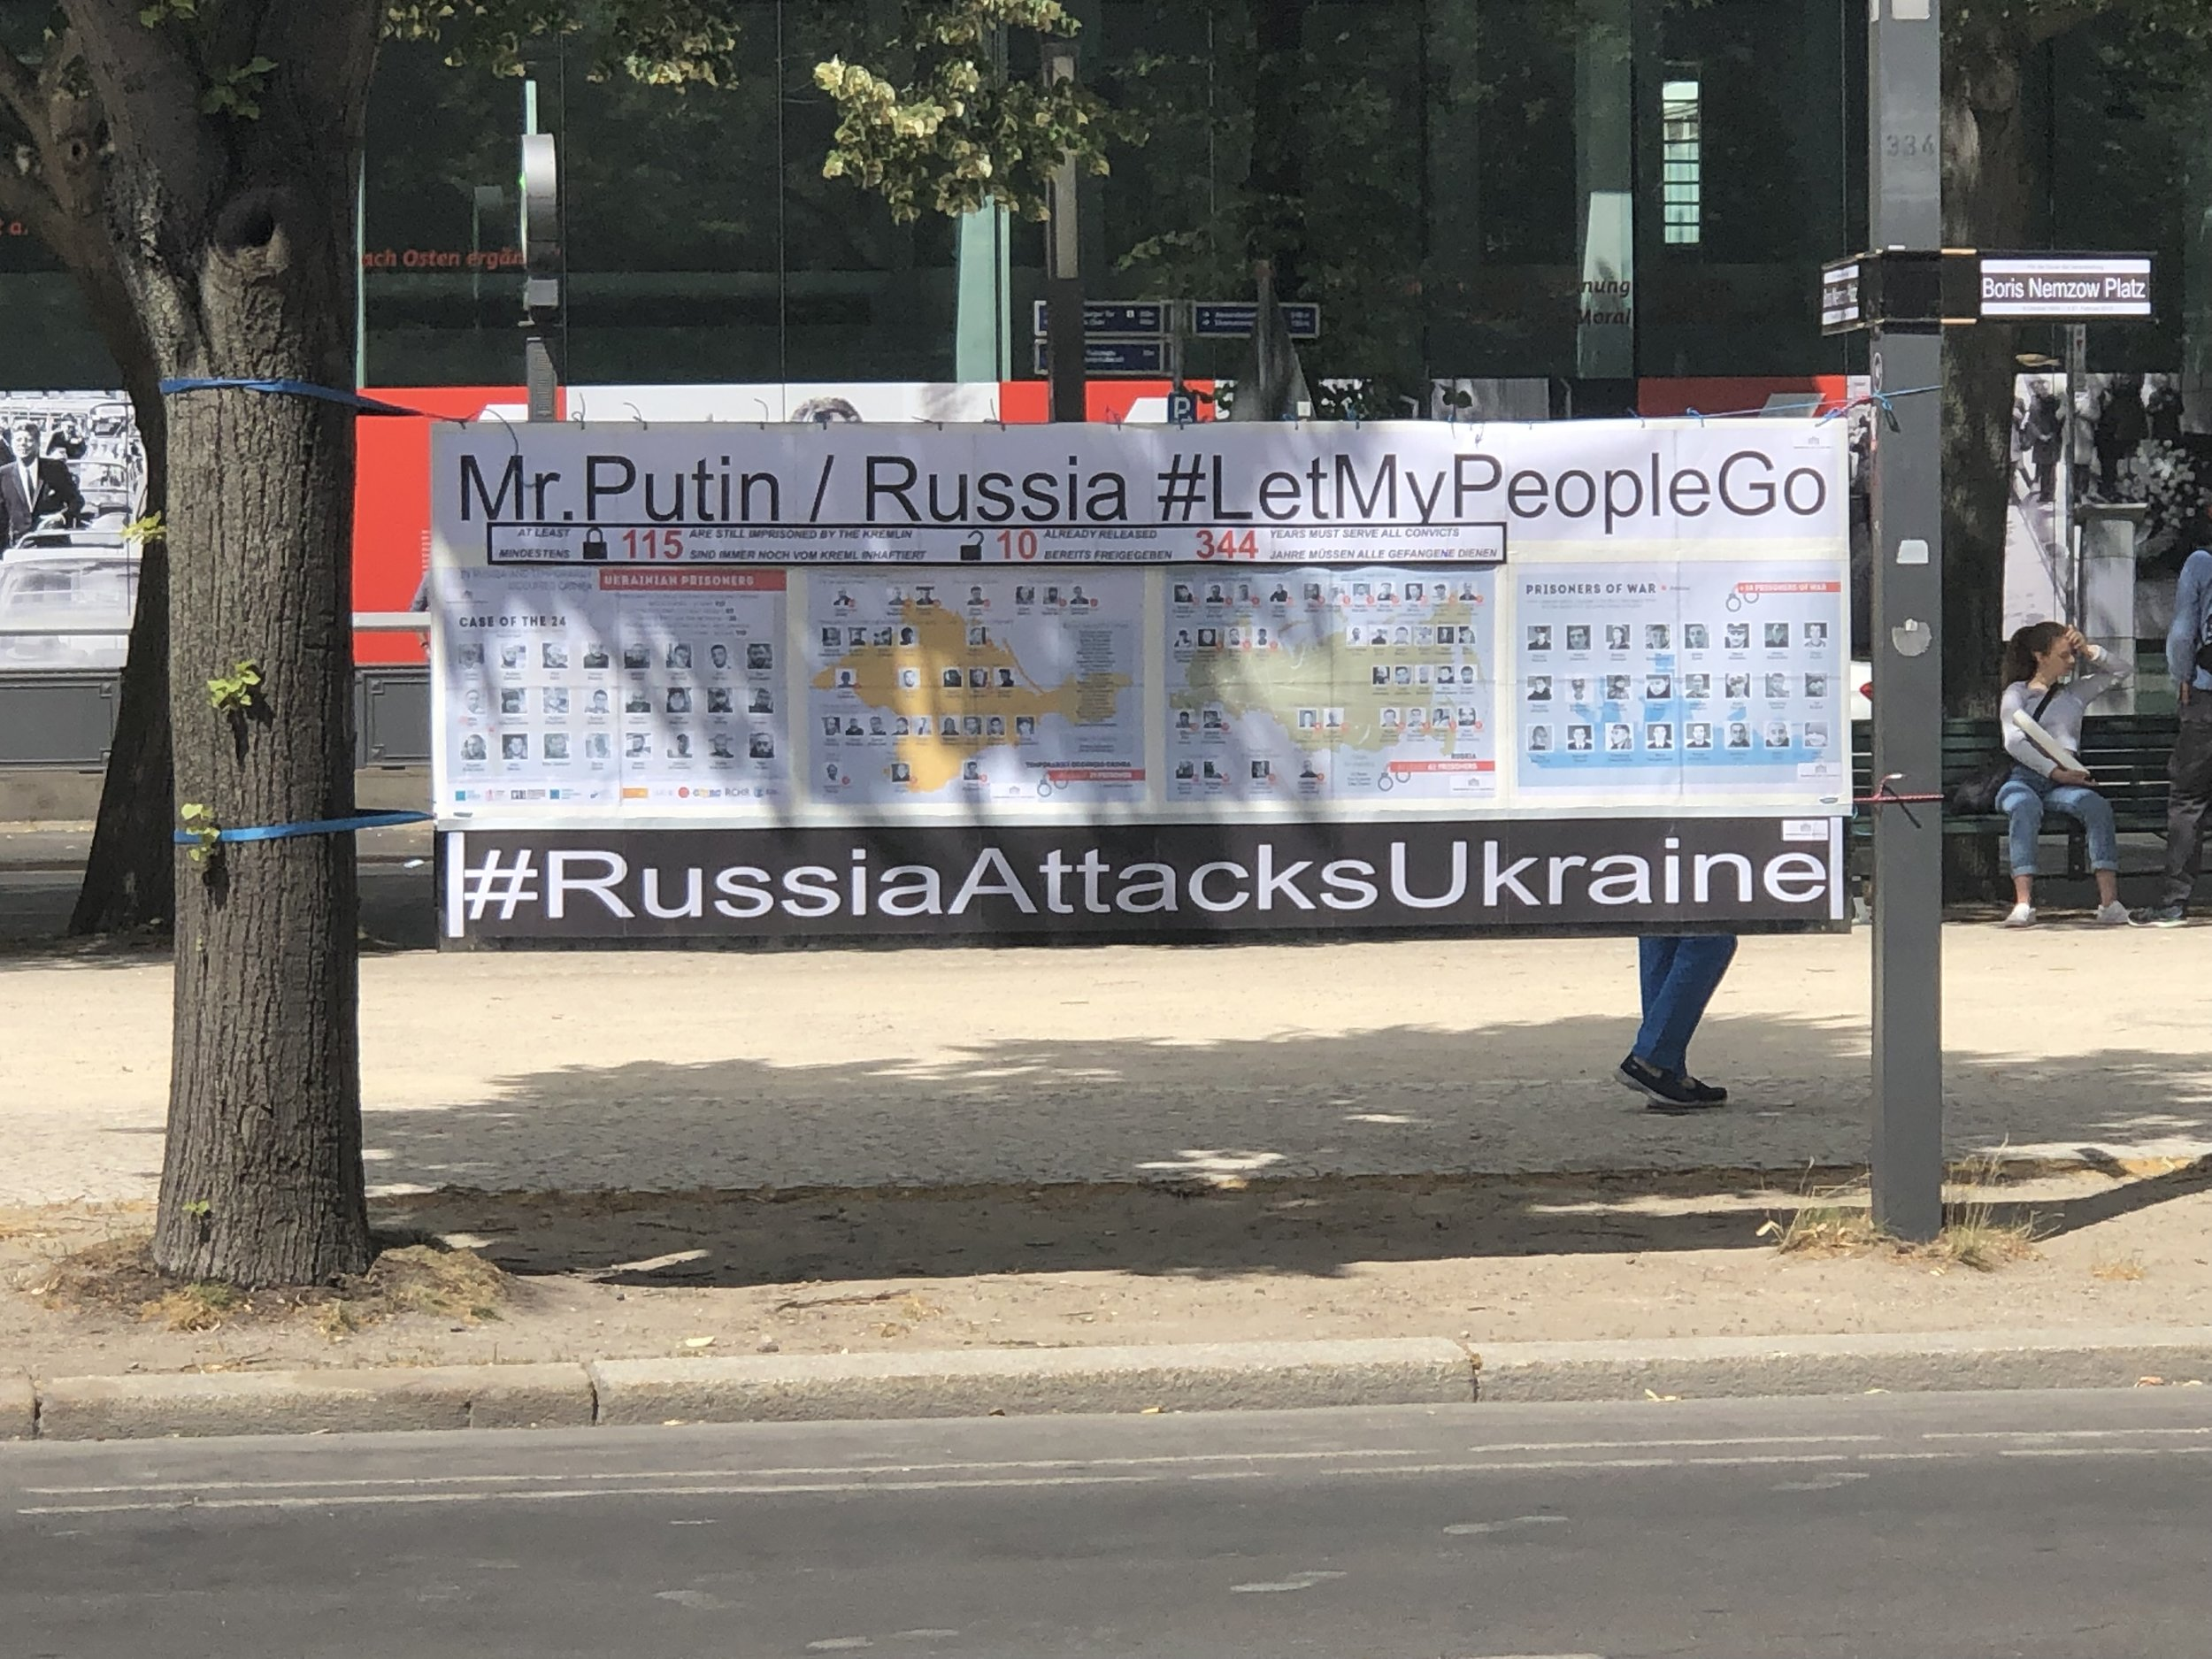 Across the street from the Russian Embassy was this protest sign.